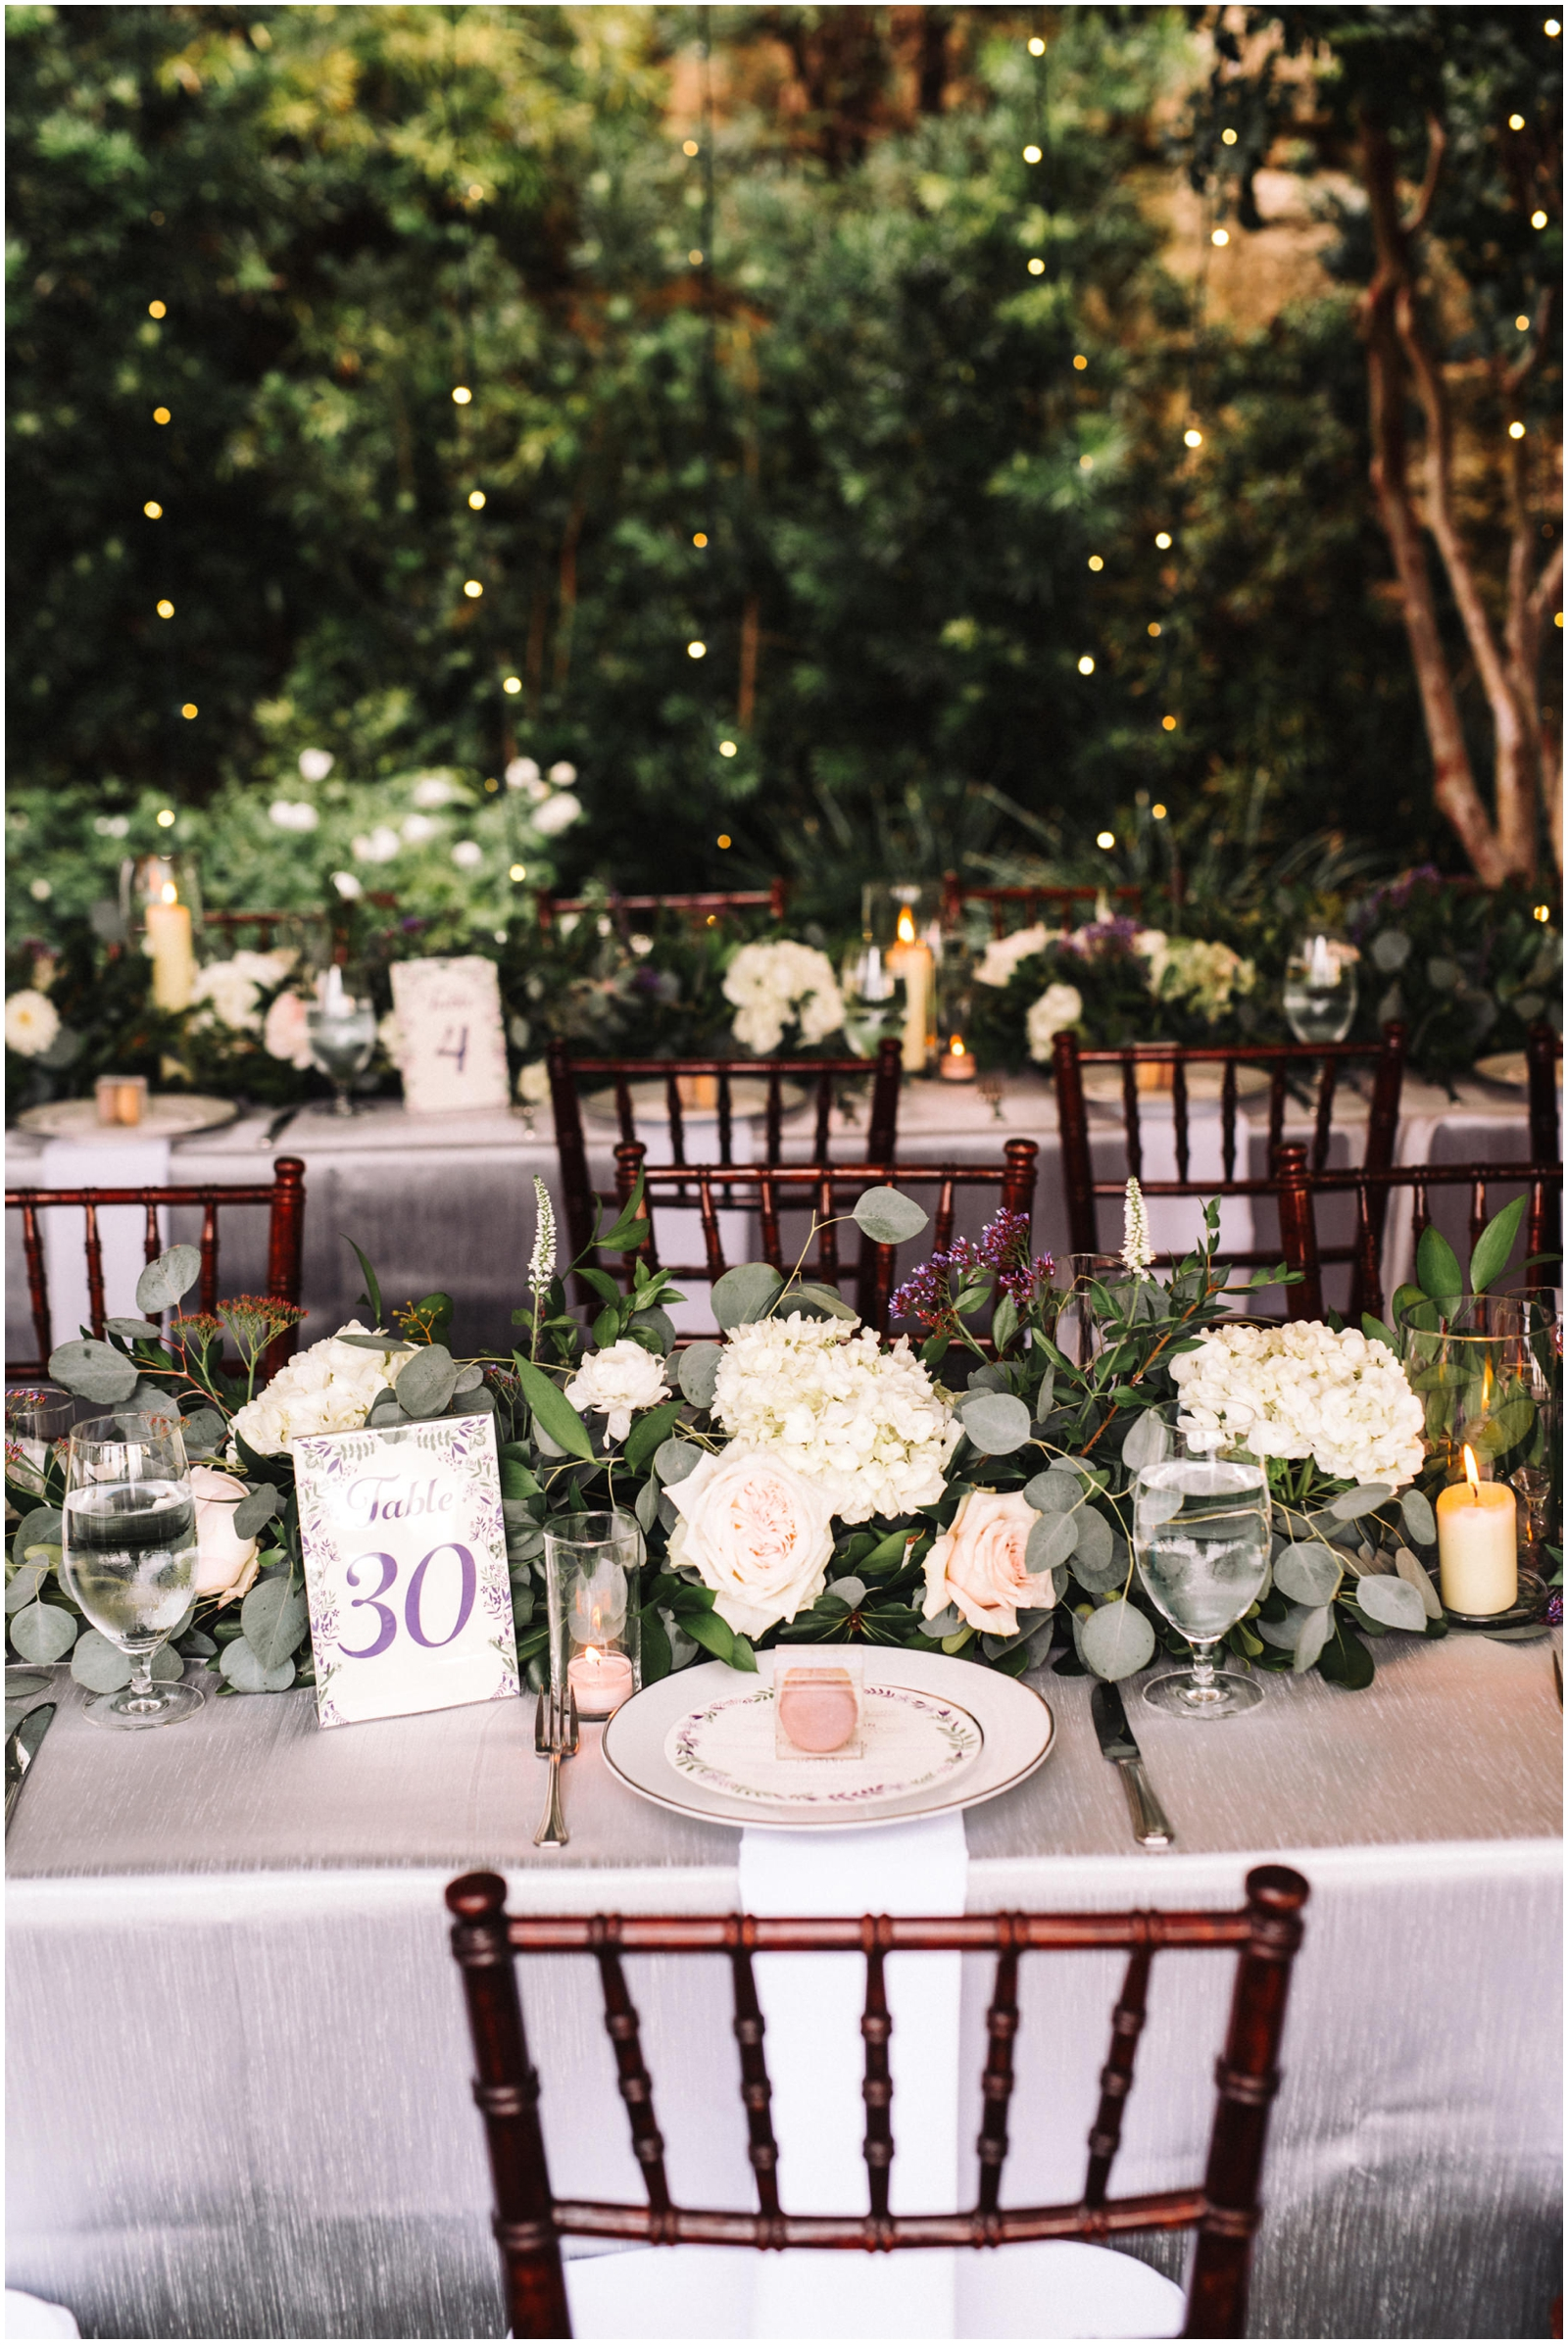 Elegant wedding tabletop